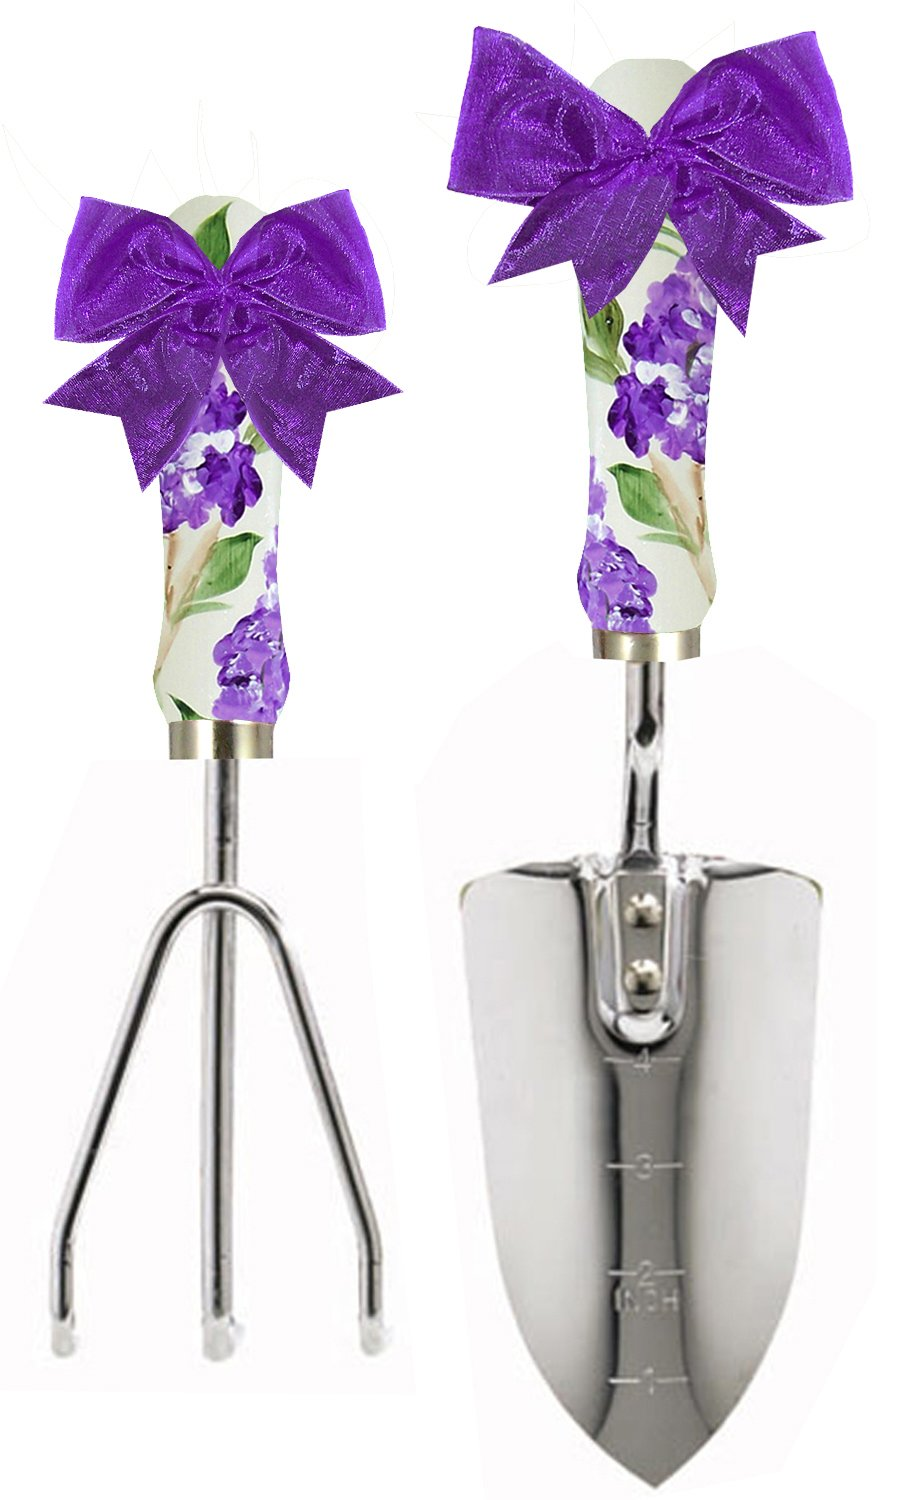 Cute Tools Stainless Steel Garden Shovel and Three Prong Rake - Landscaping Instrument, Hand Painted Wooden Handle In The USA, Durable Yard and Gardening Equipment From CuteTools! - Art For A Cause, Wisteria